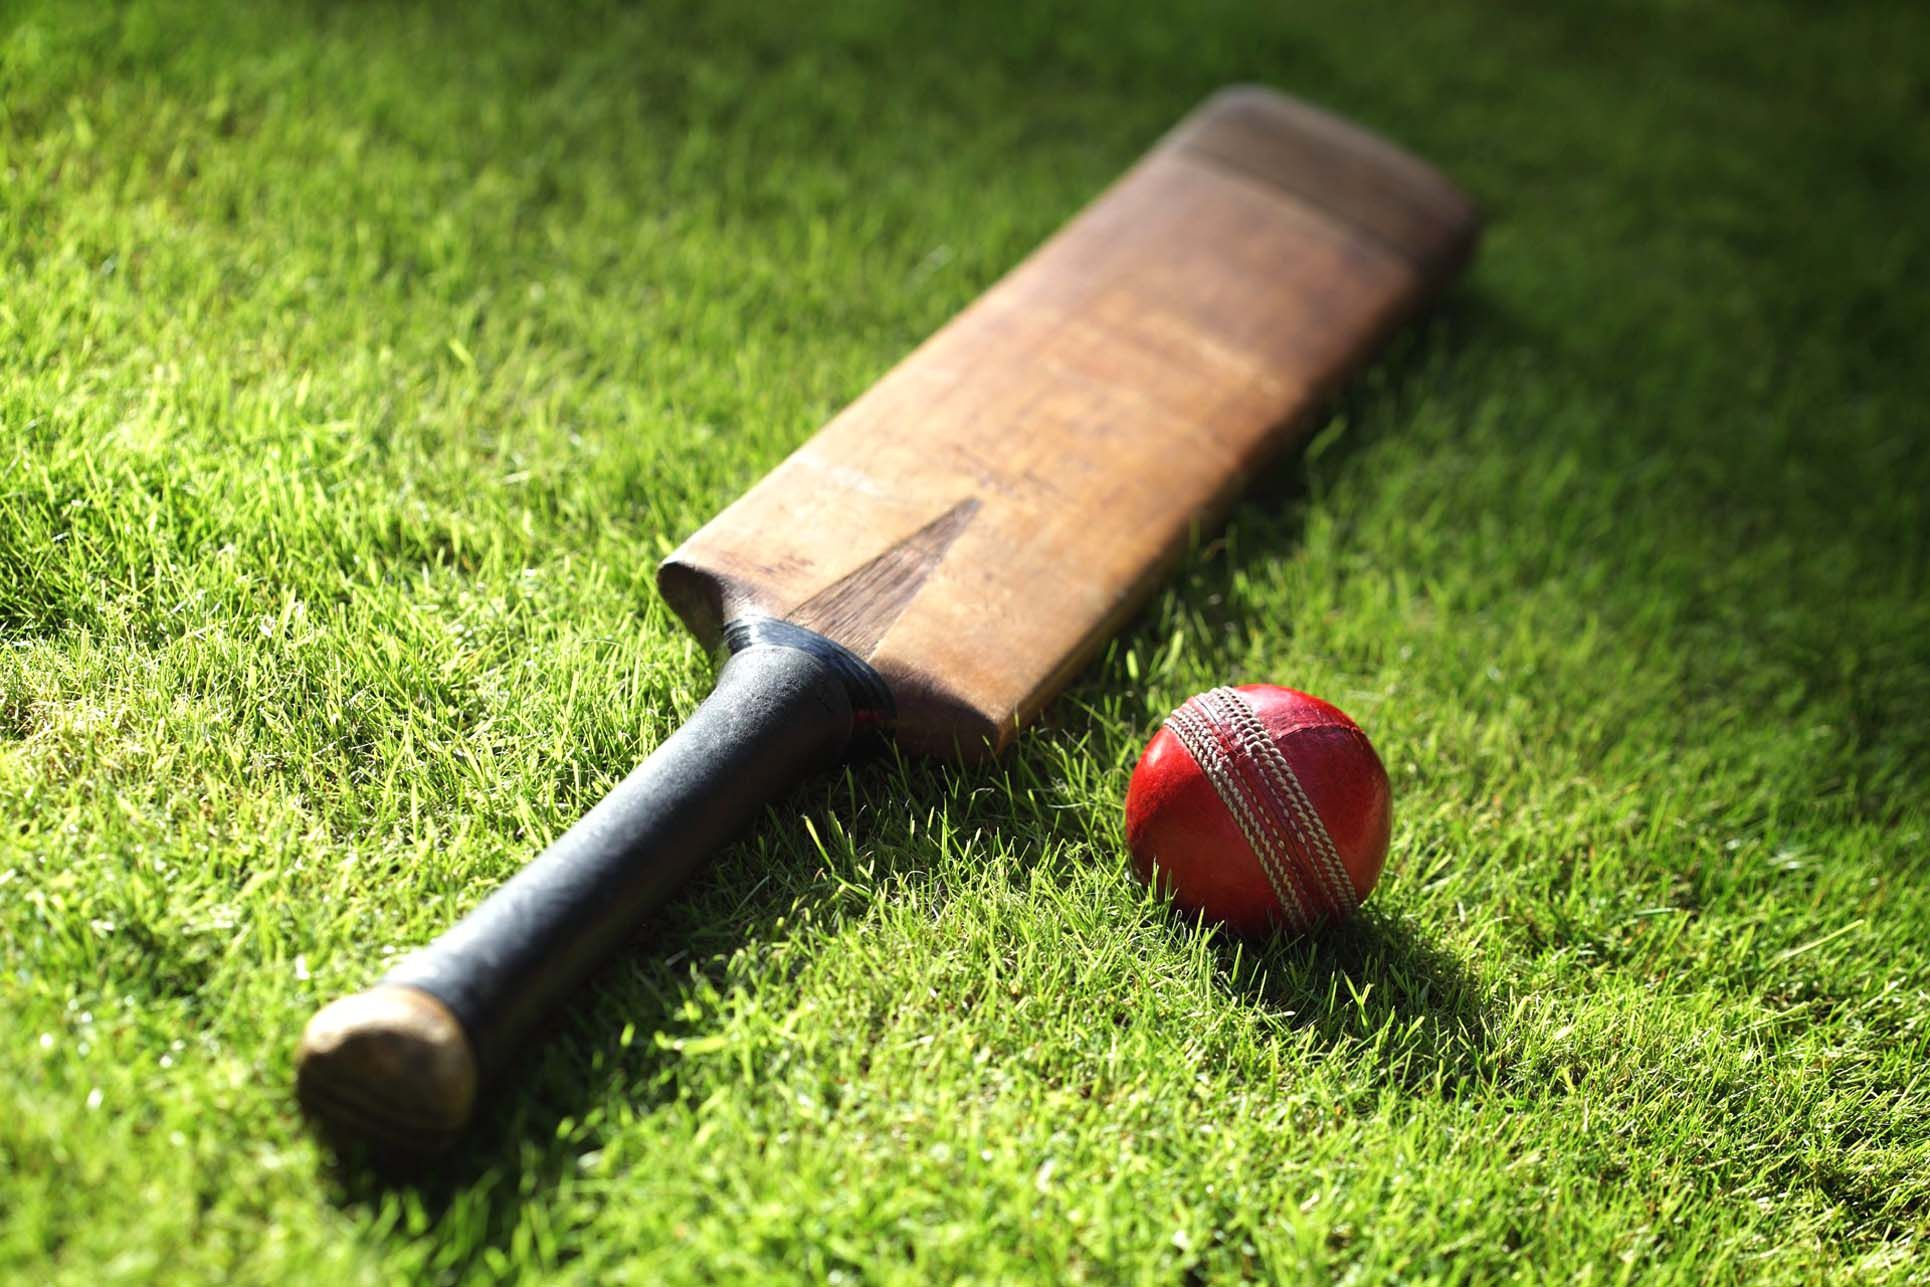 Cricket Wallpaper - HD Wallpapers Backgrounds of Your Choice